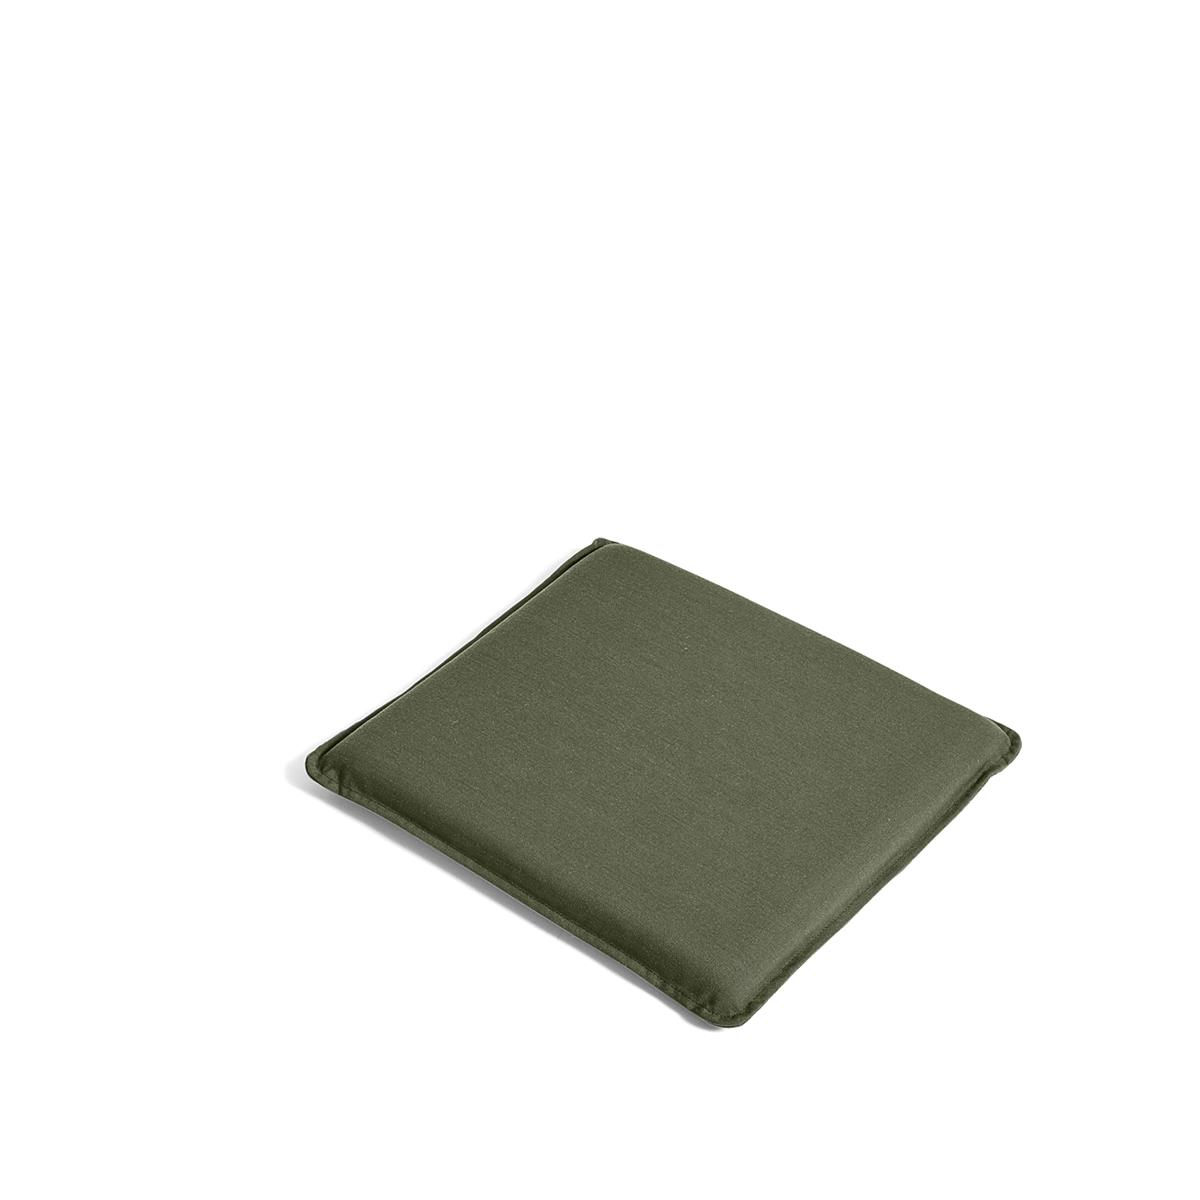 Palissade Chair & Armchair Seat Cushion - Olive